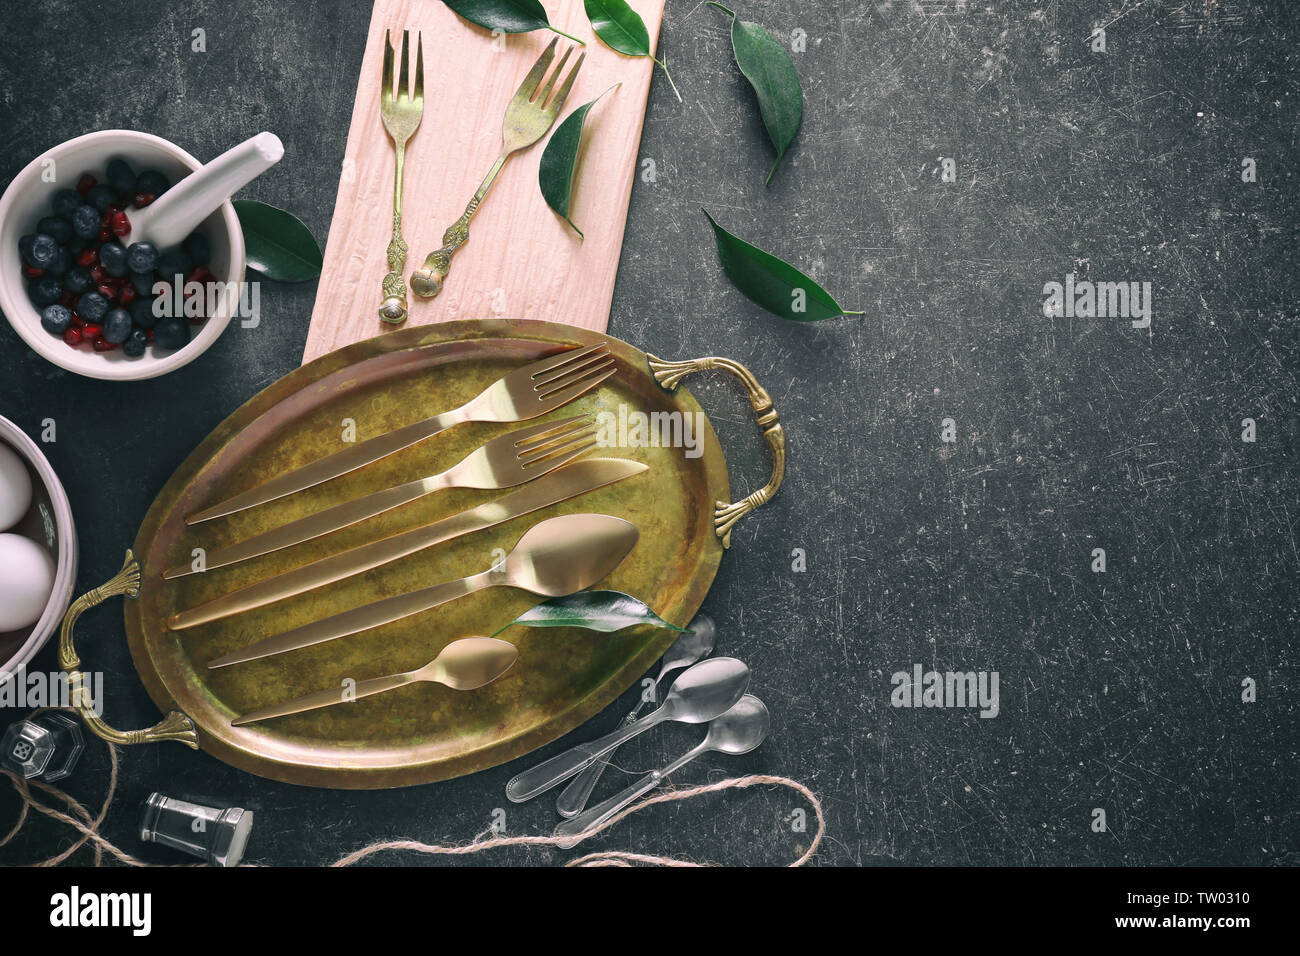 Cutlery set with copper tray, on gray background - Stock Image